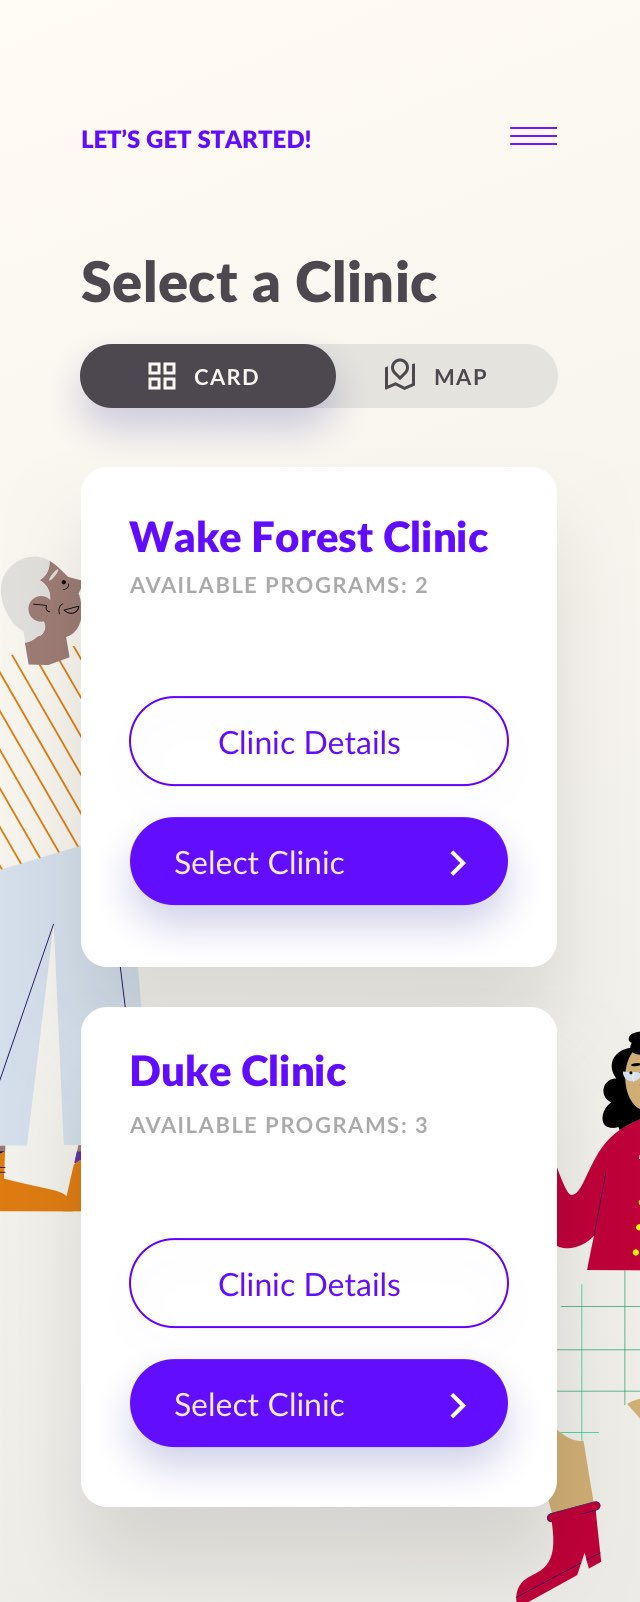 Apply_Select Clinic@2x